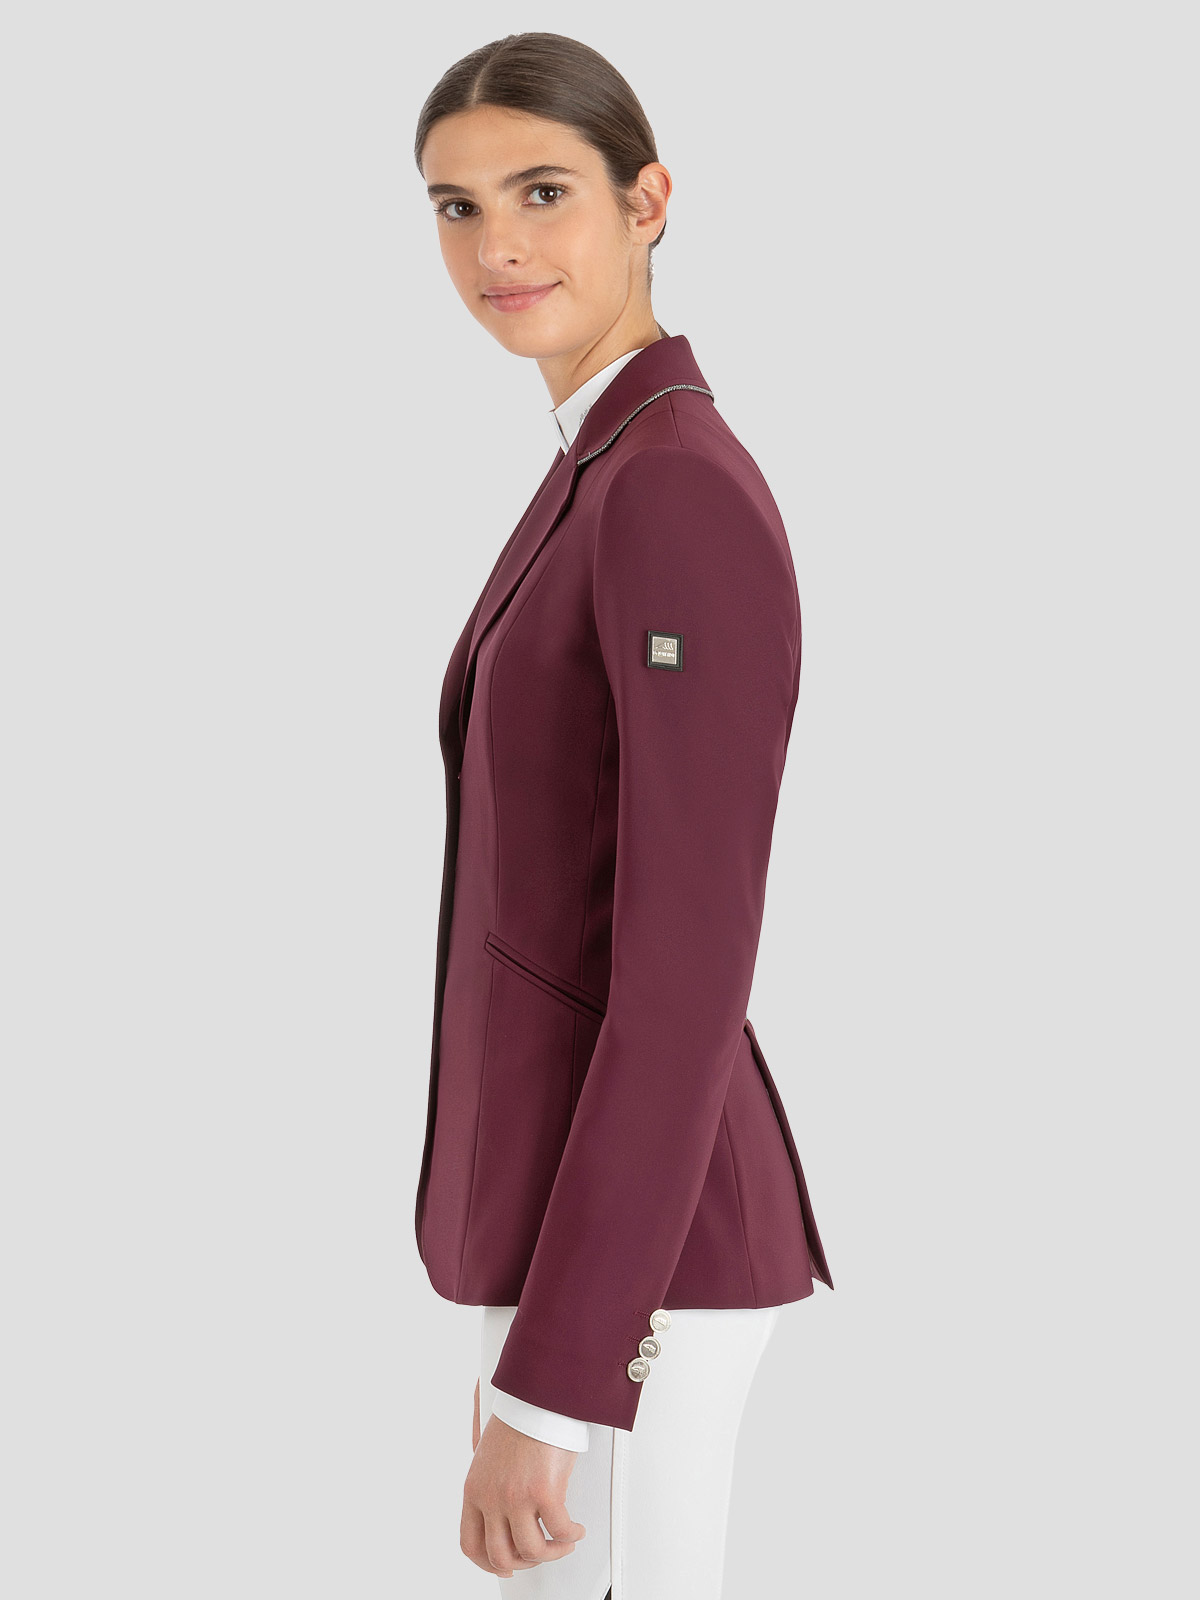 GWENTYG WOMEN'S SHOW COAT 5